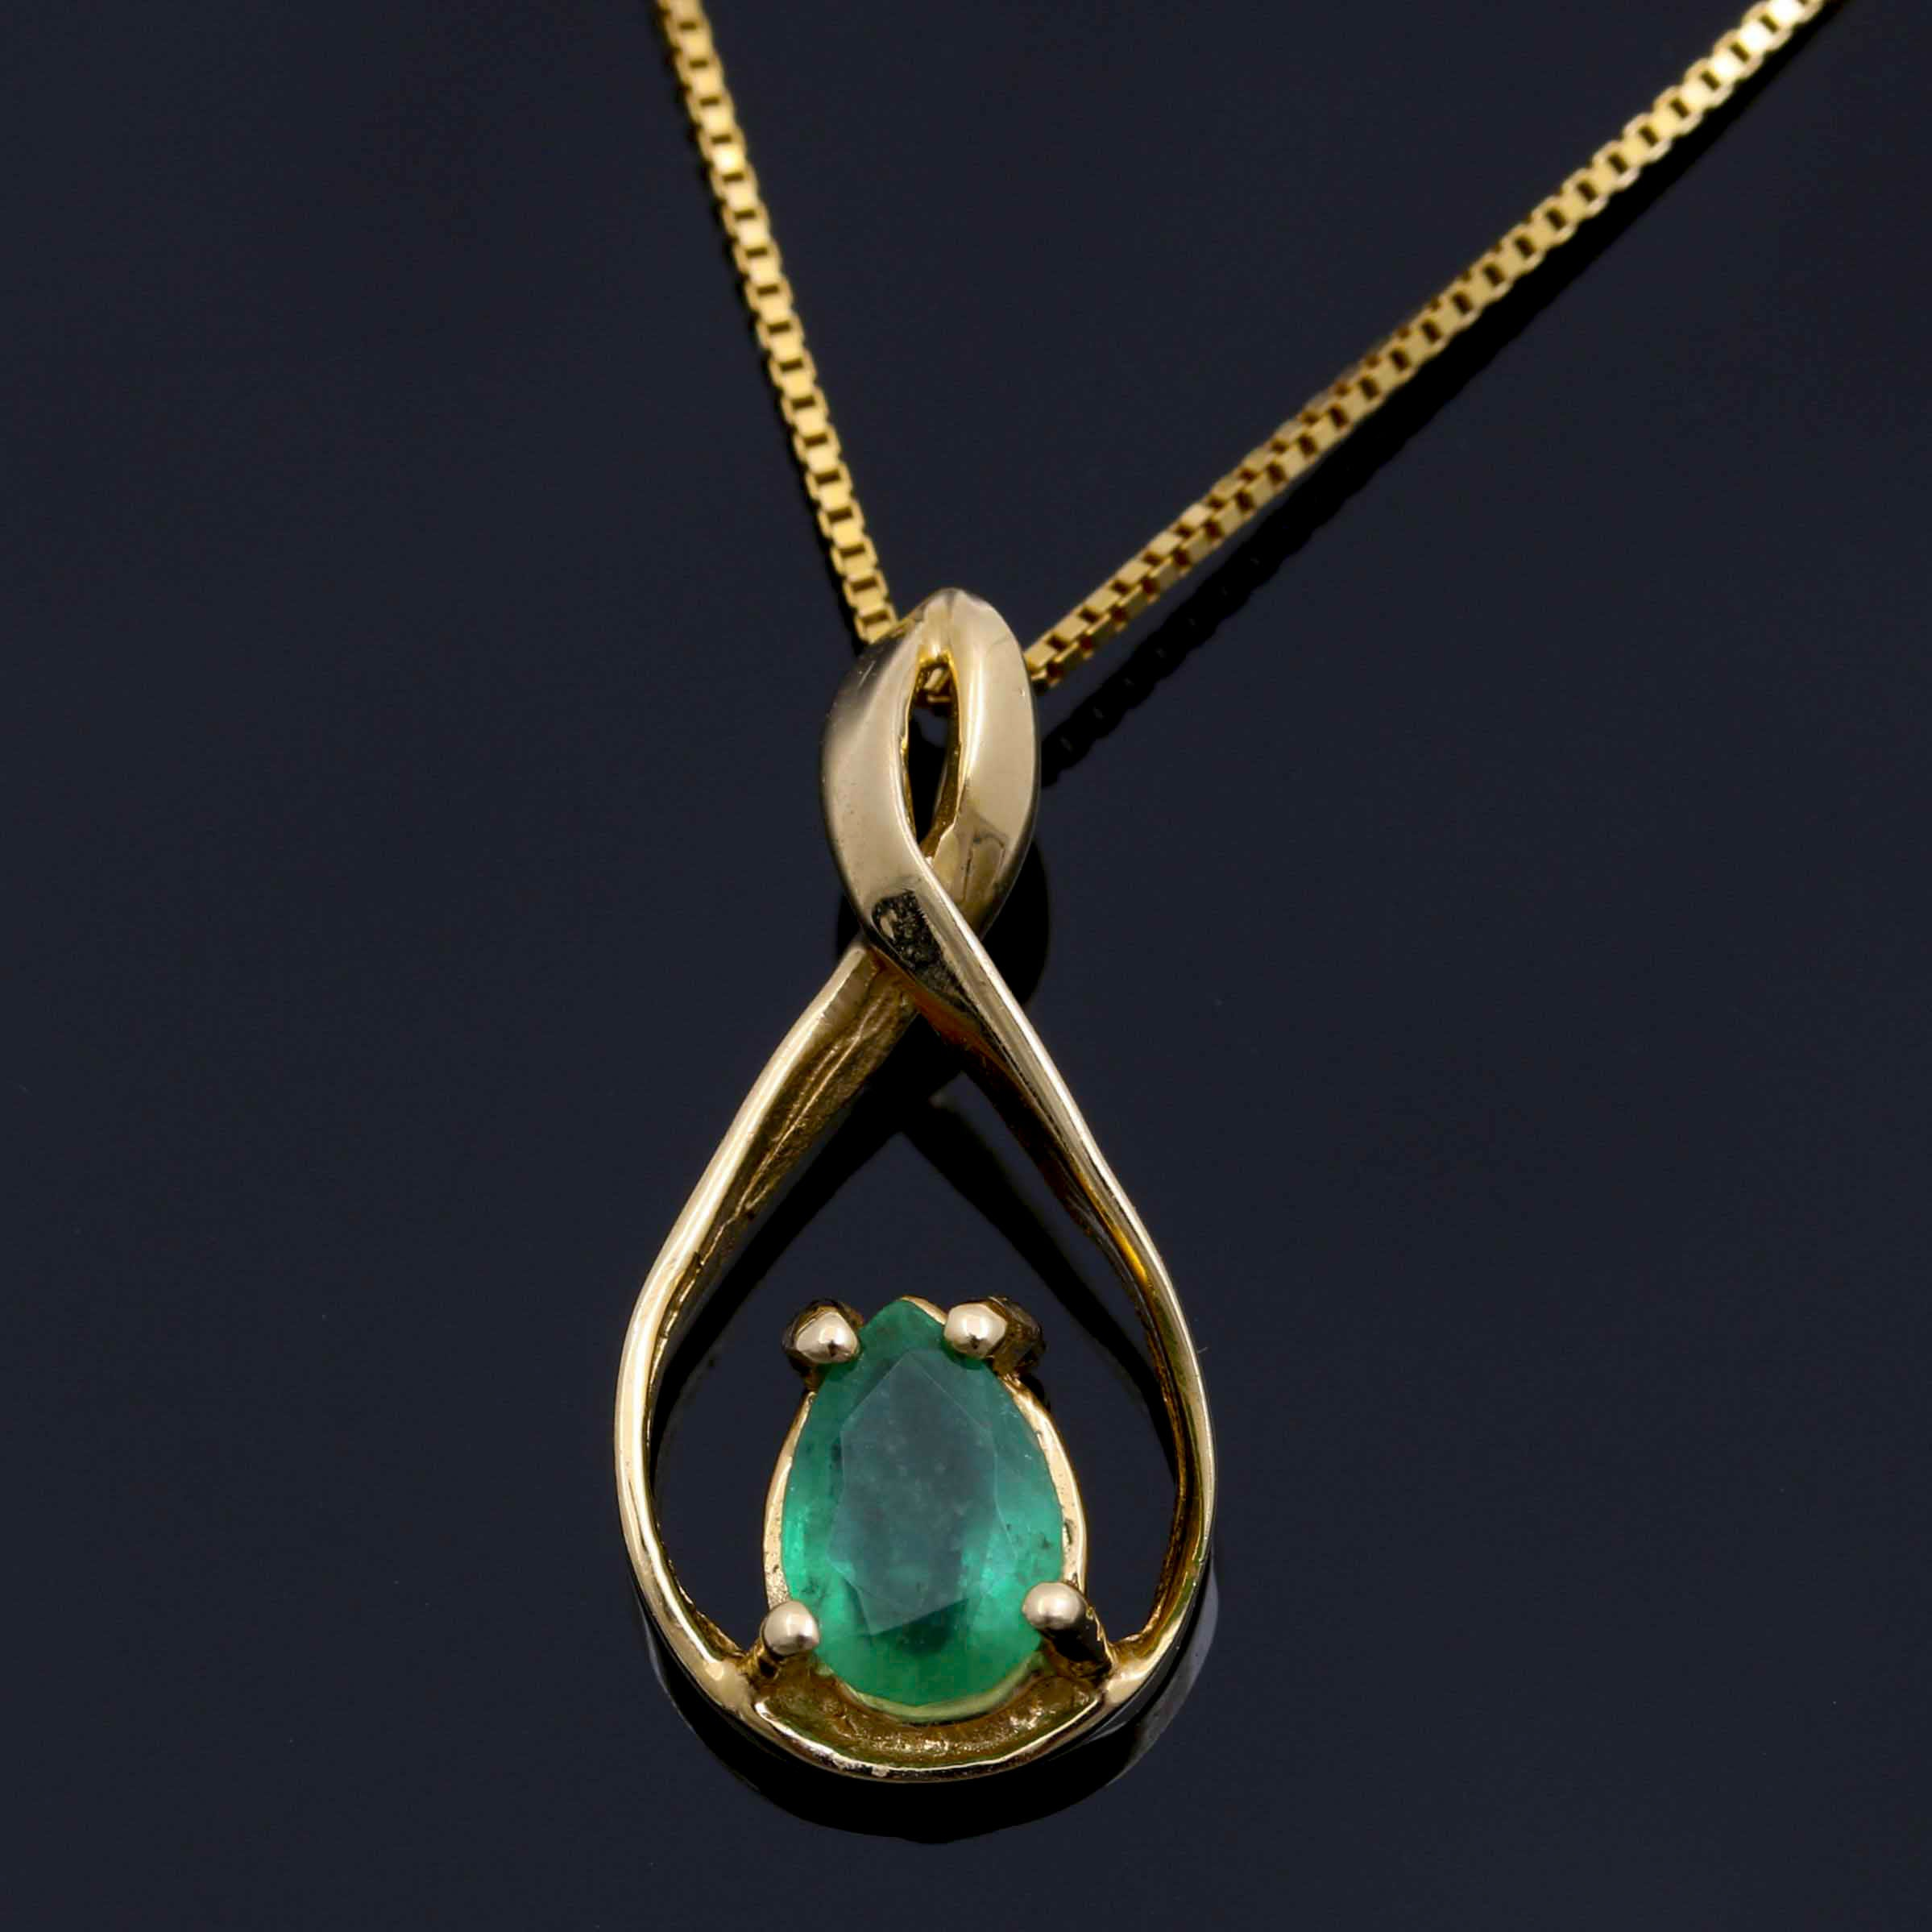 10K and 14K Yellow Gold Emerald Pendant Necklace